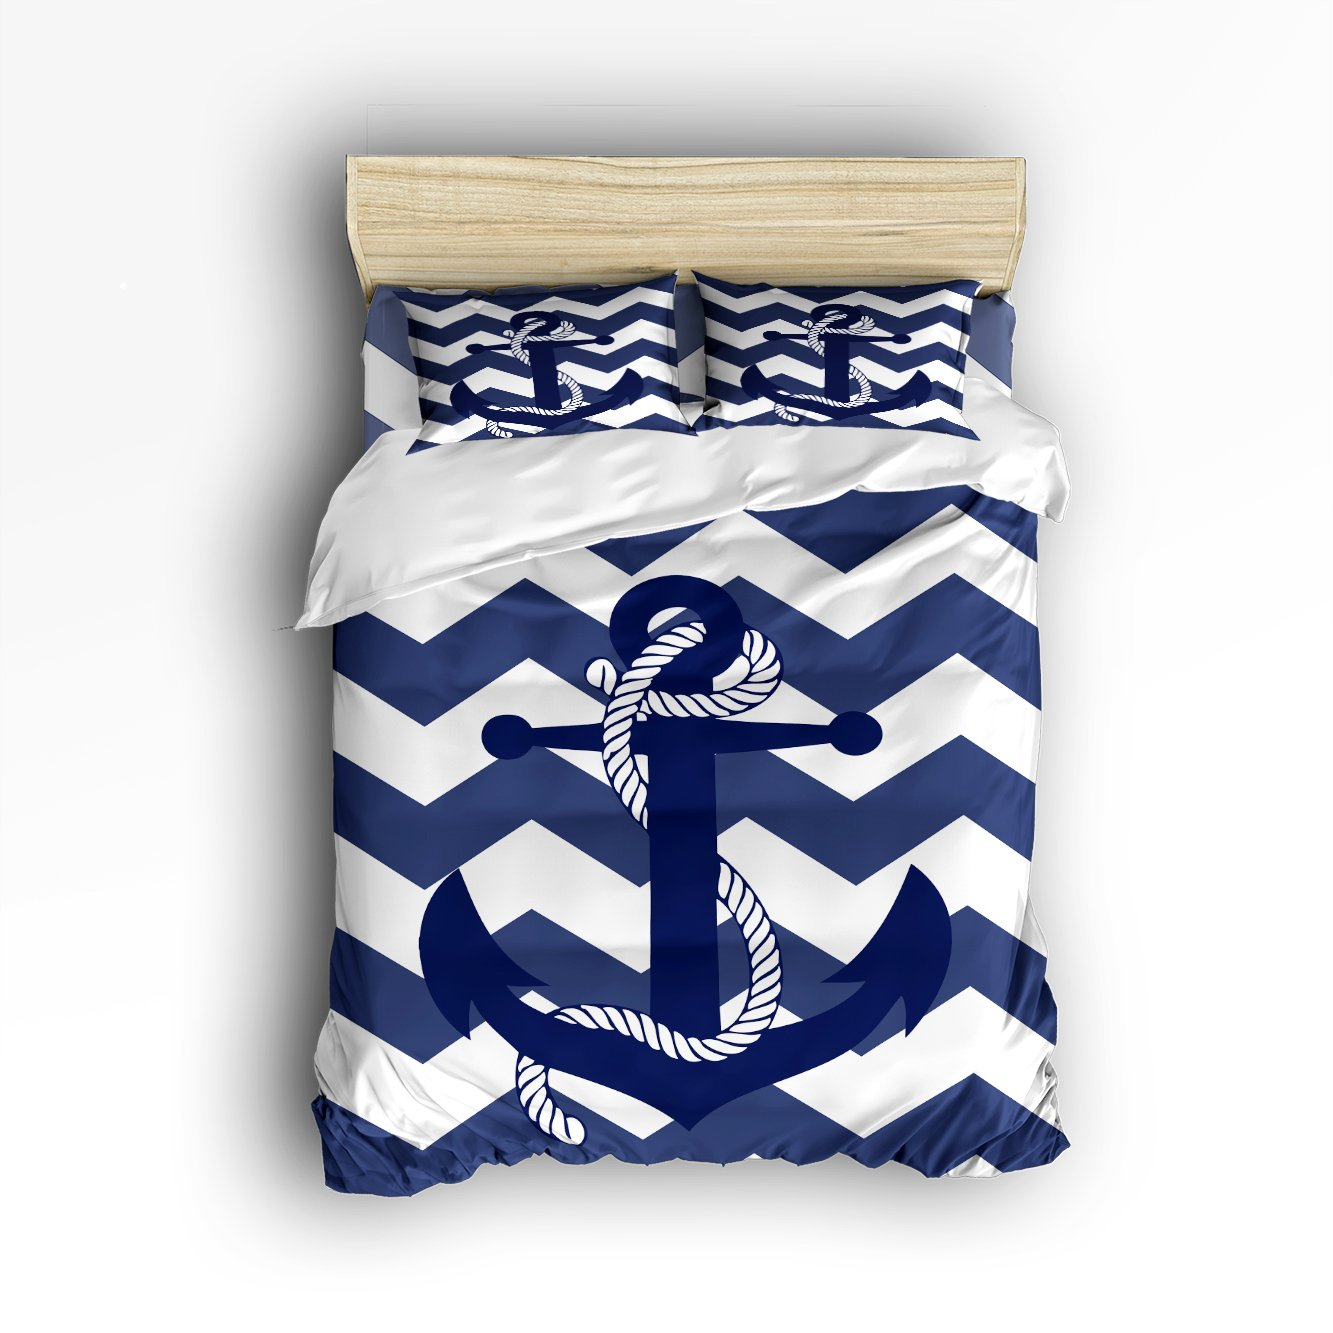 4 Pieces Home Comforter Bedding Set, Custom Nautical Navy Blue Anchor King Size